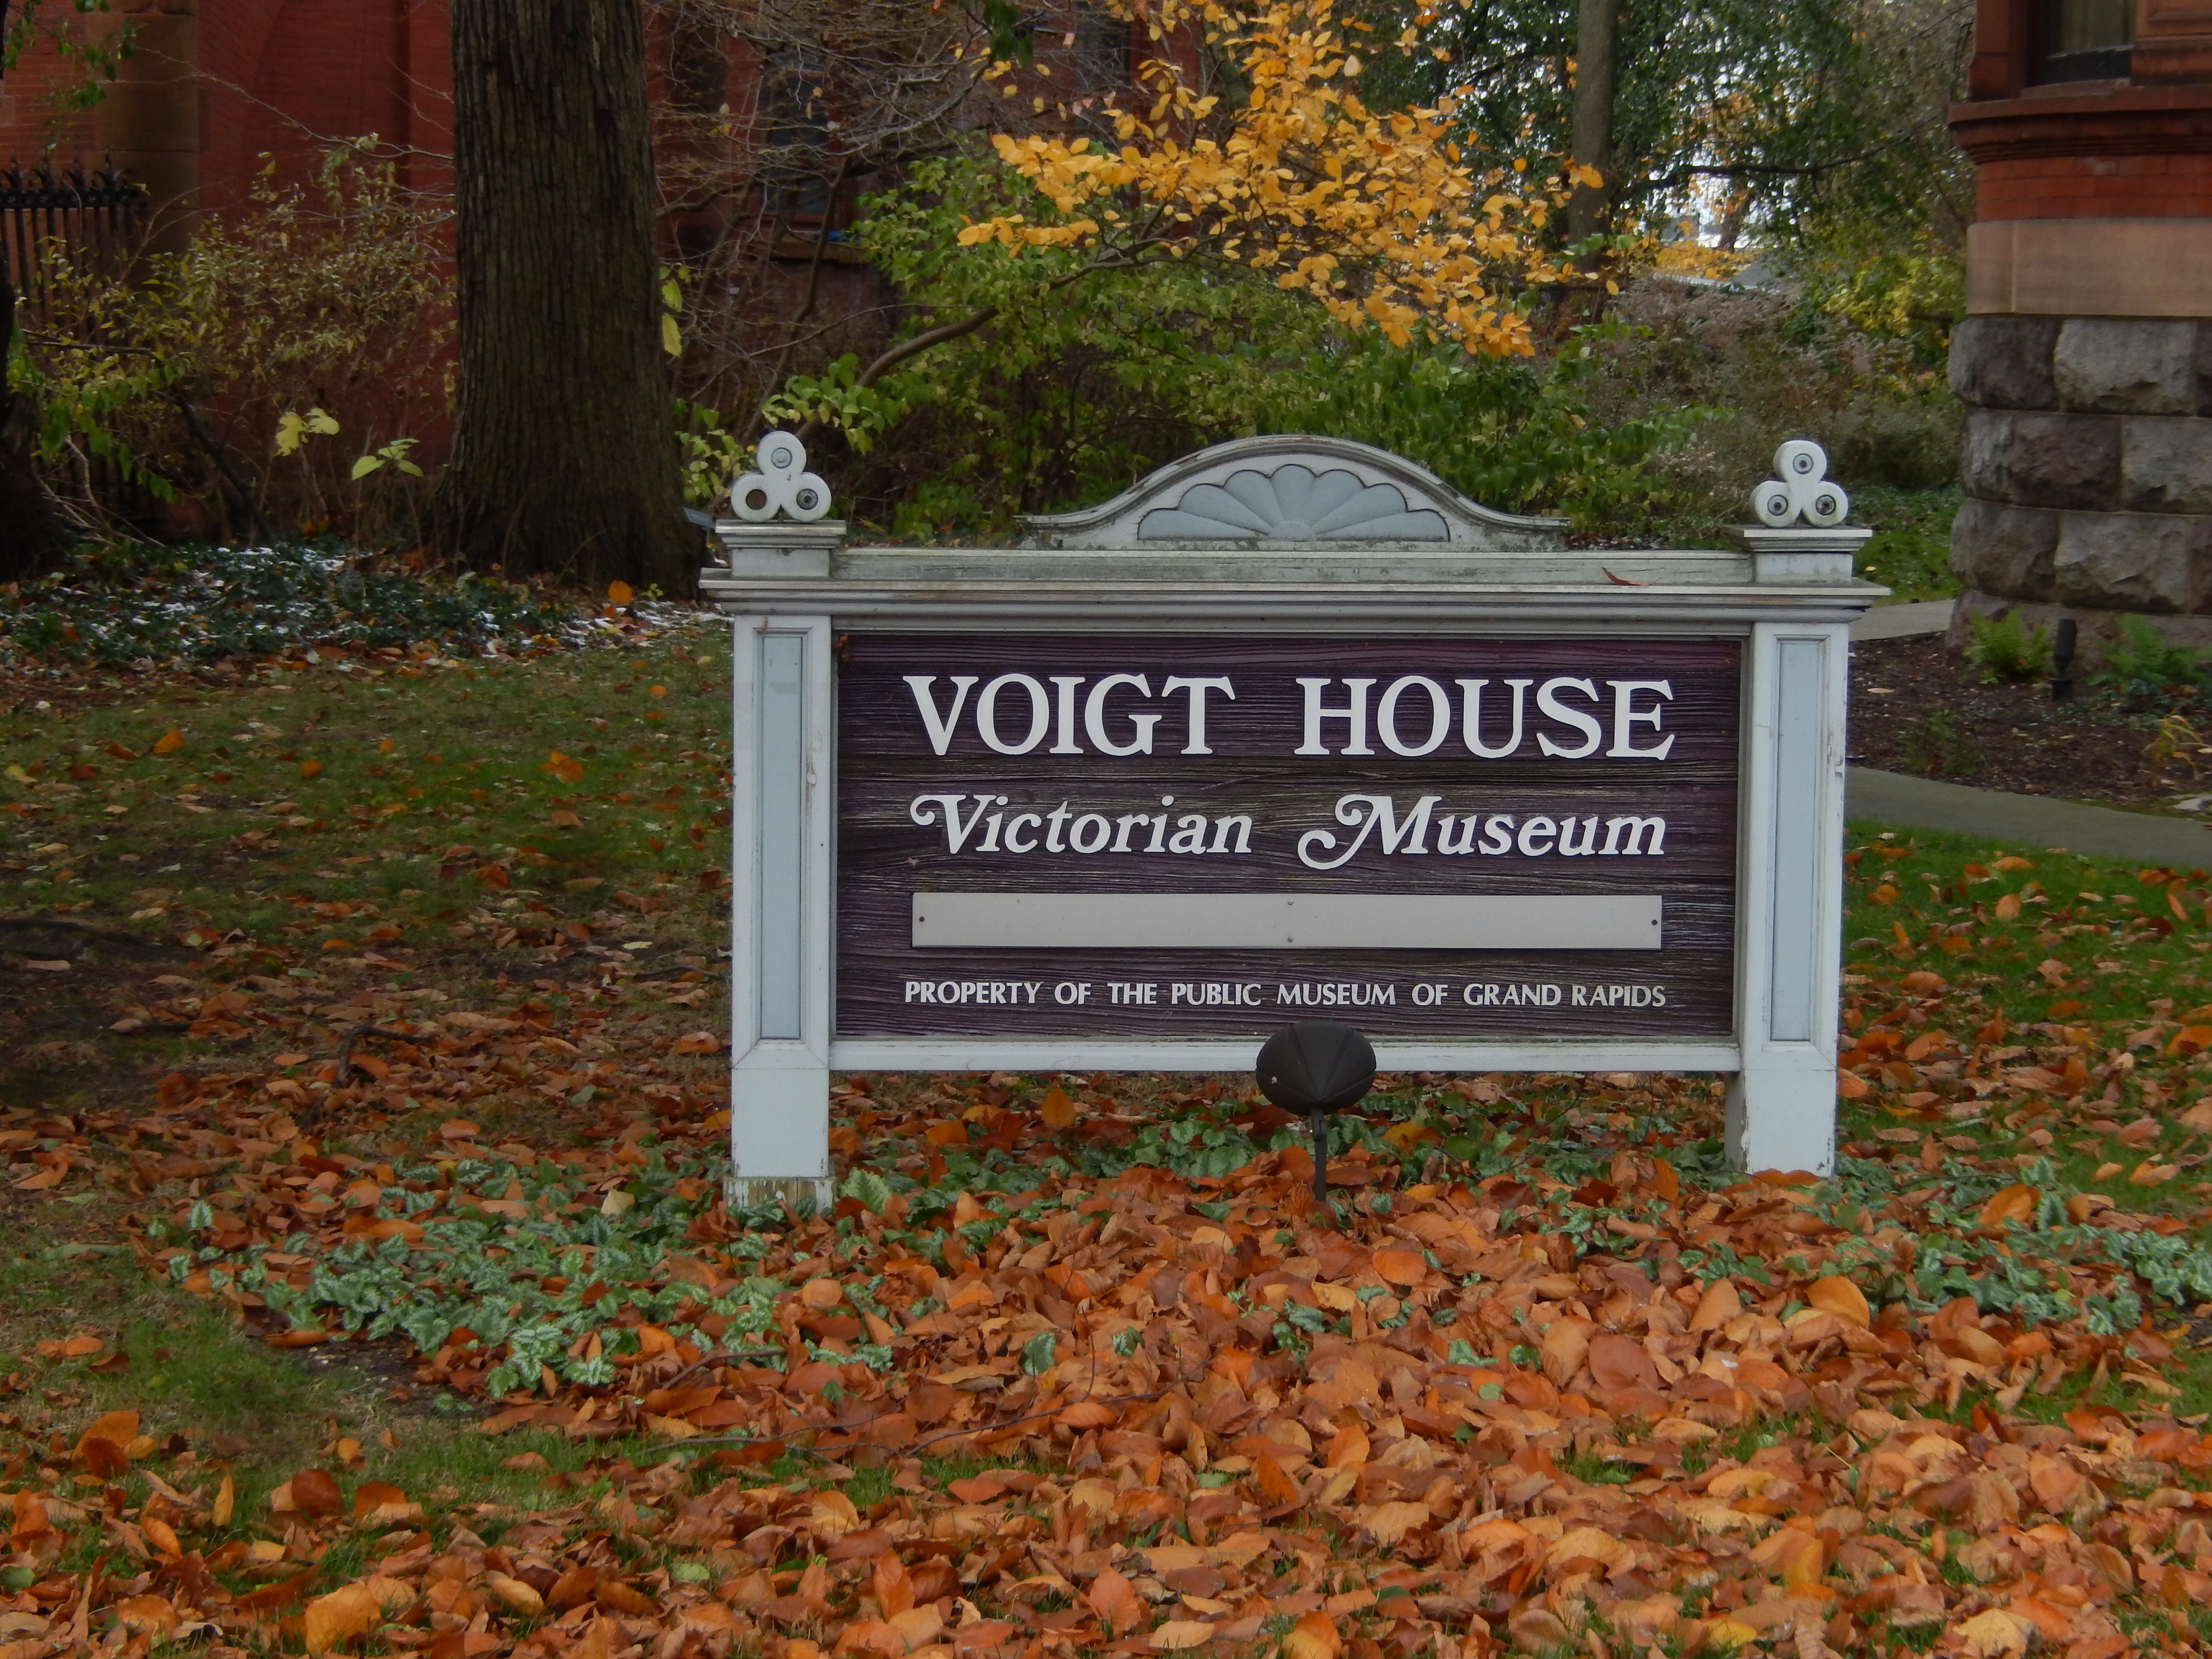 Voigt House Victorian Museum